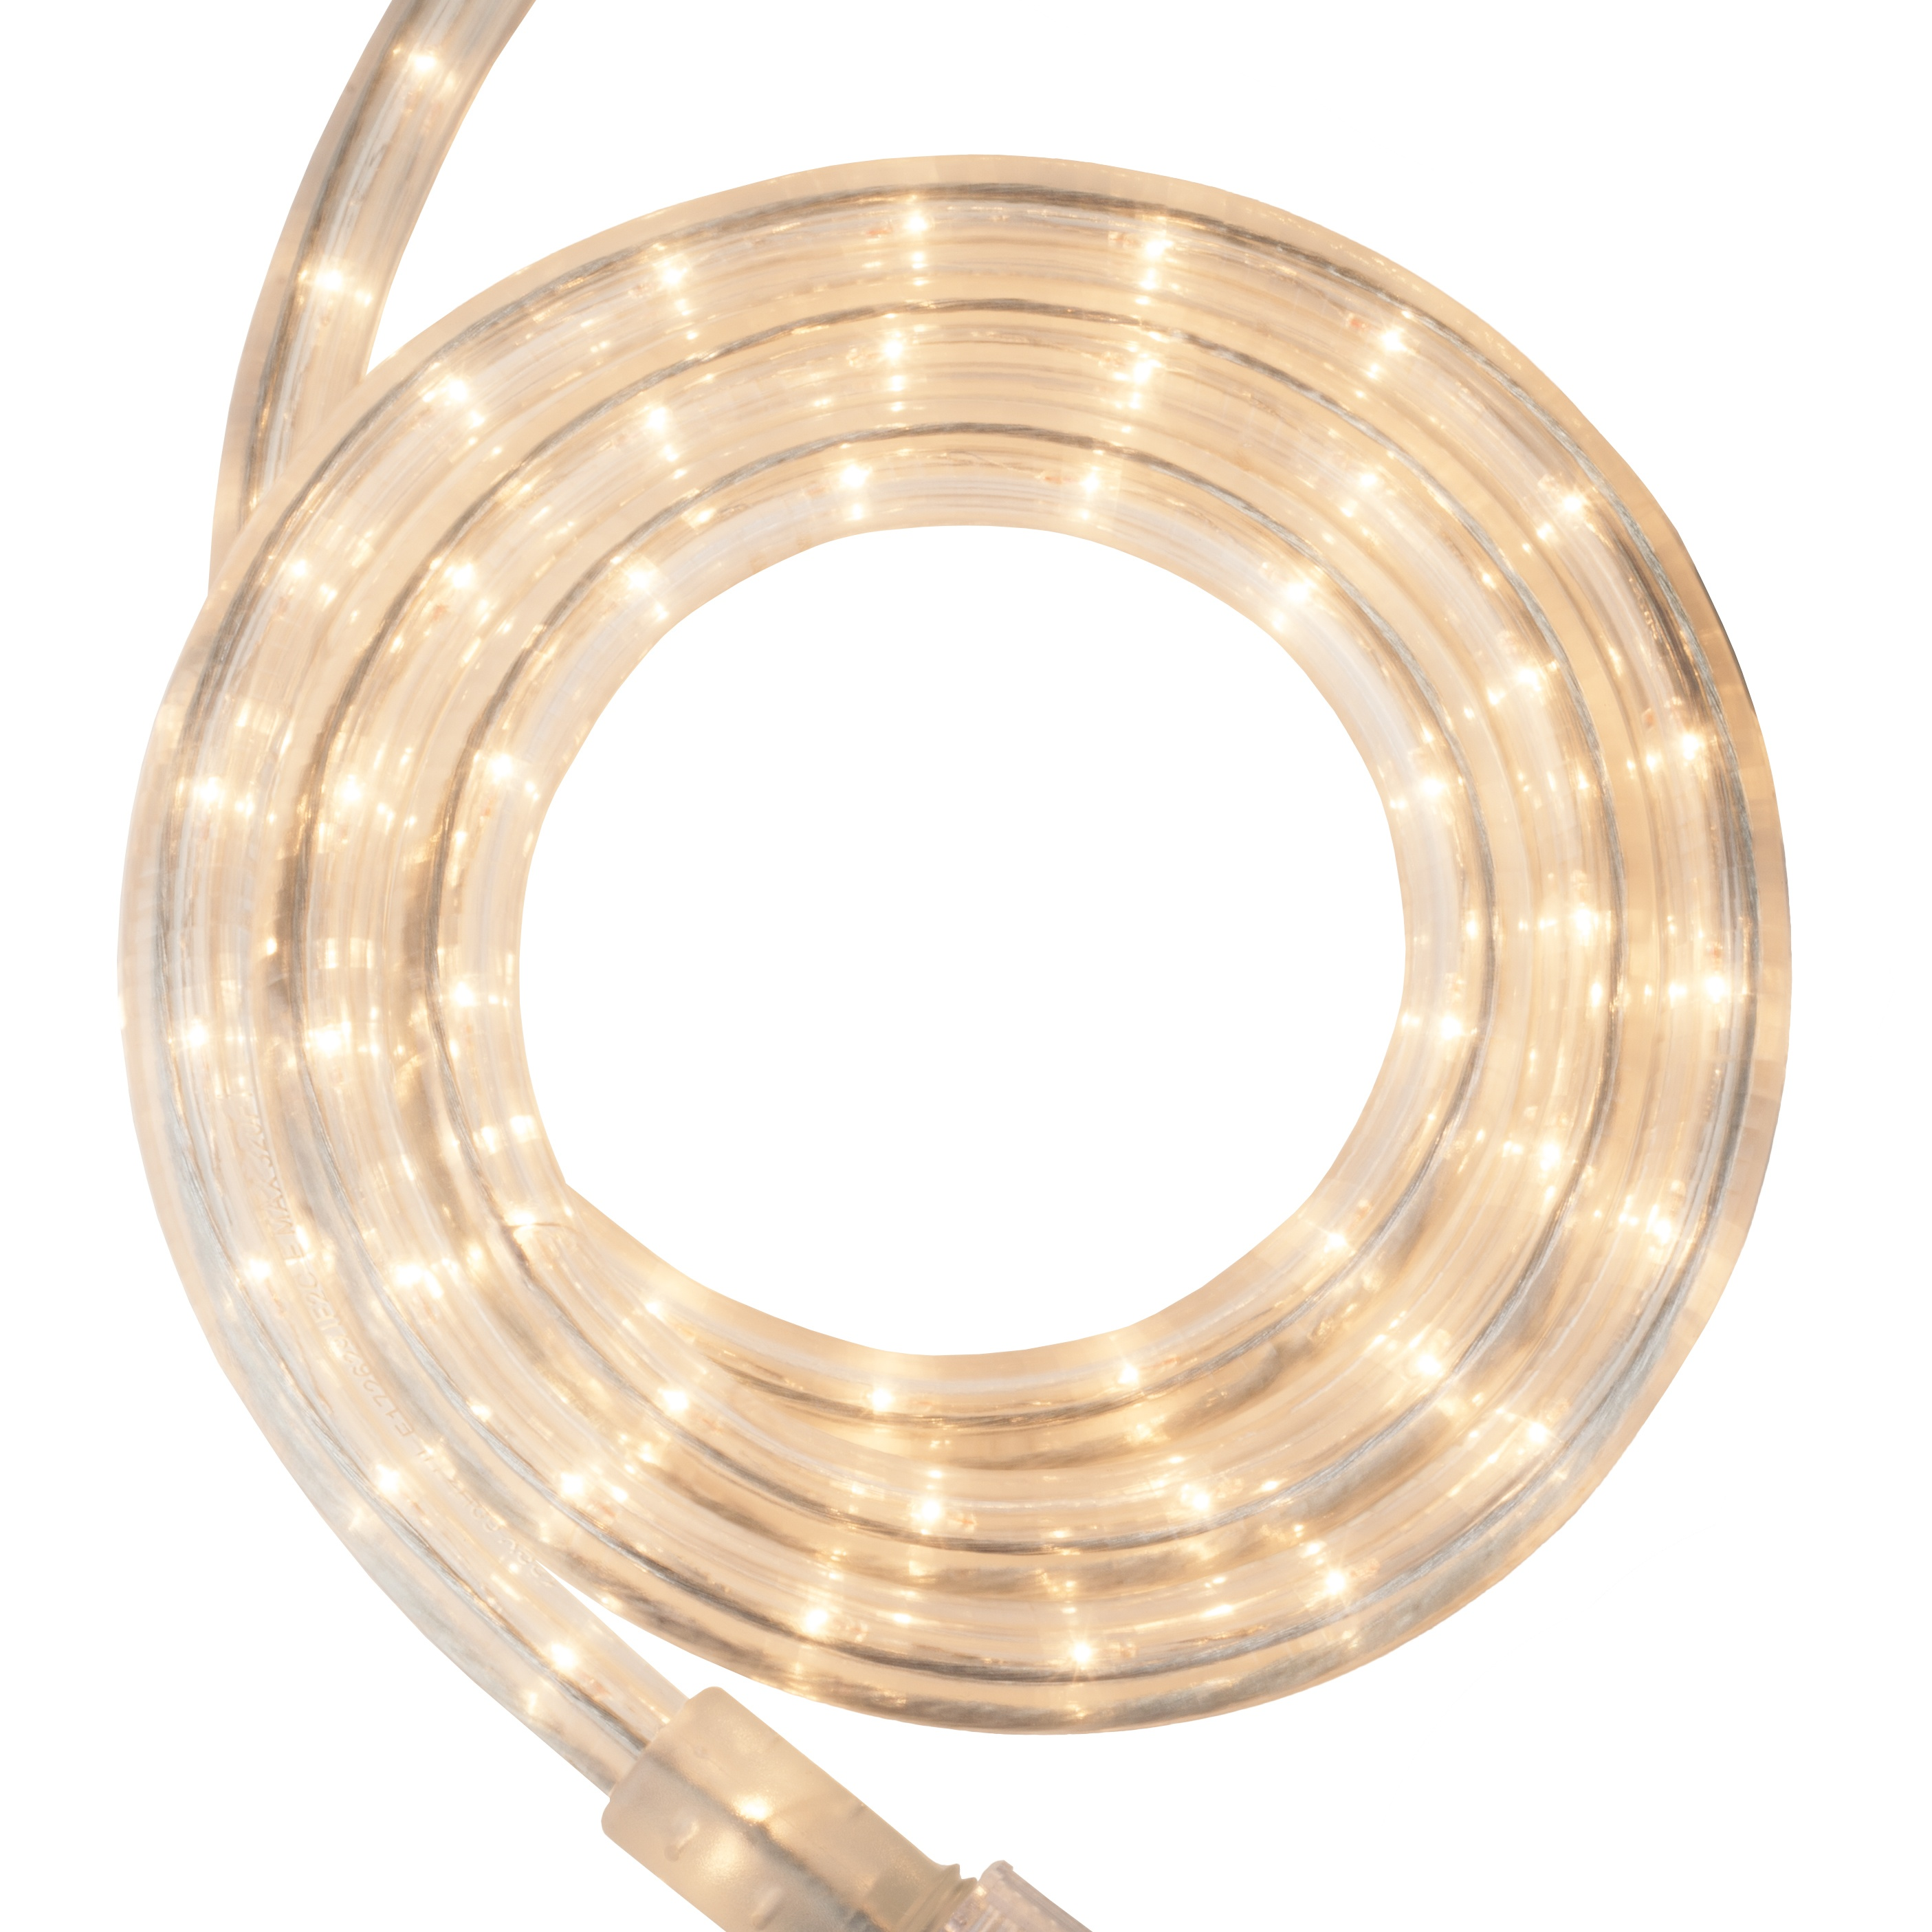 Clear Rope Light Kits